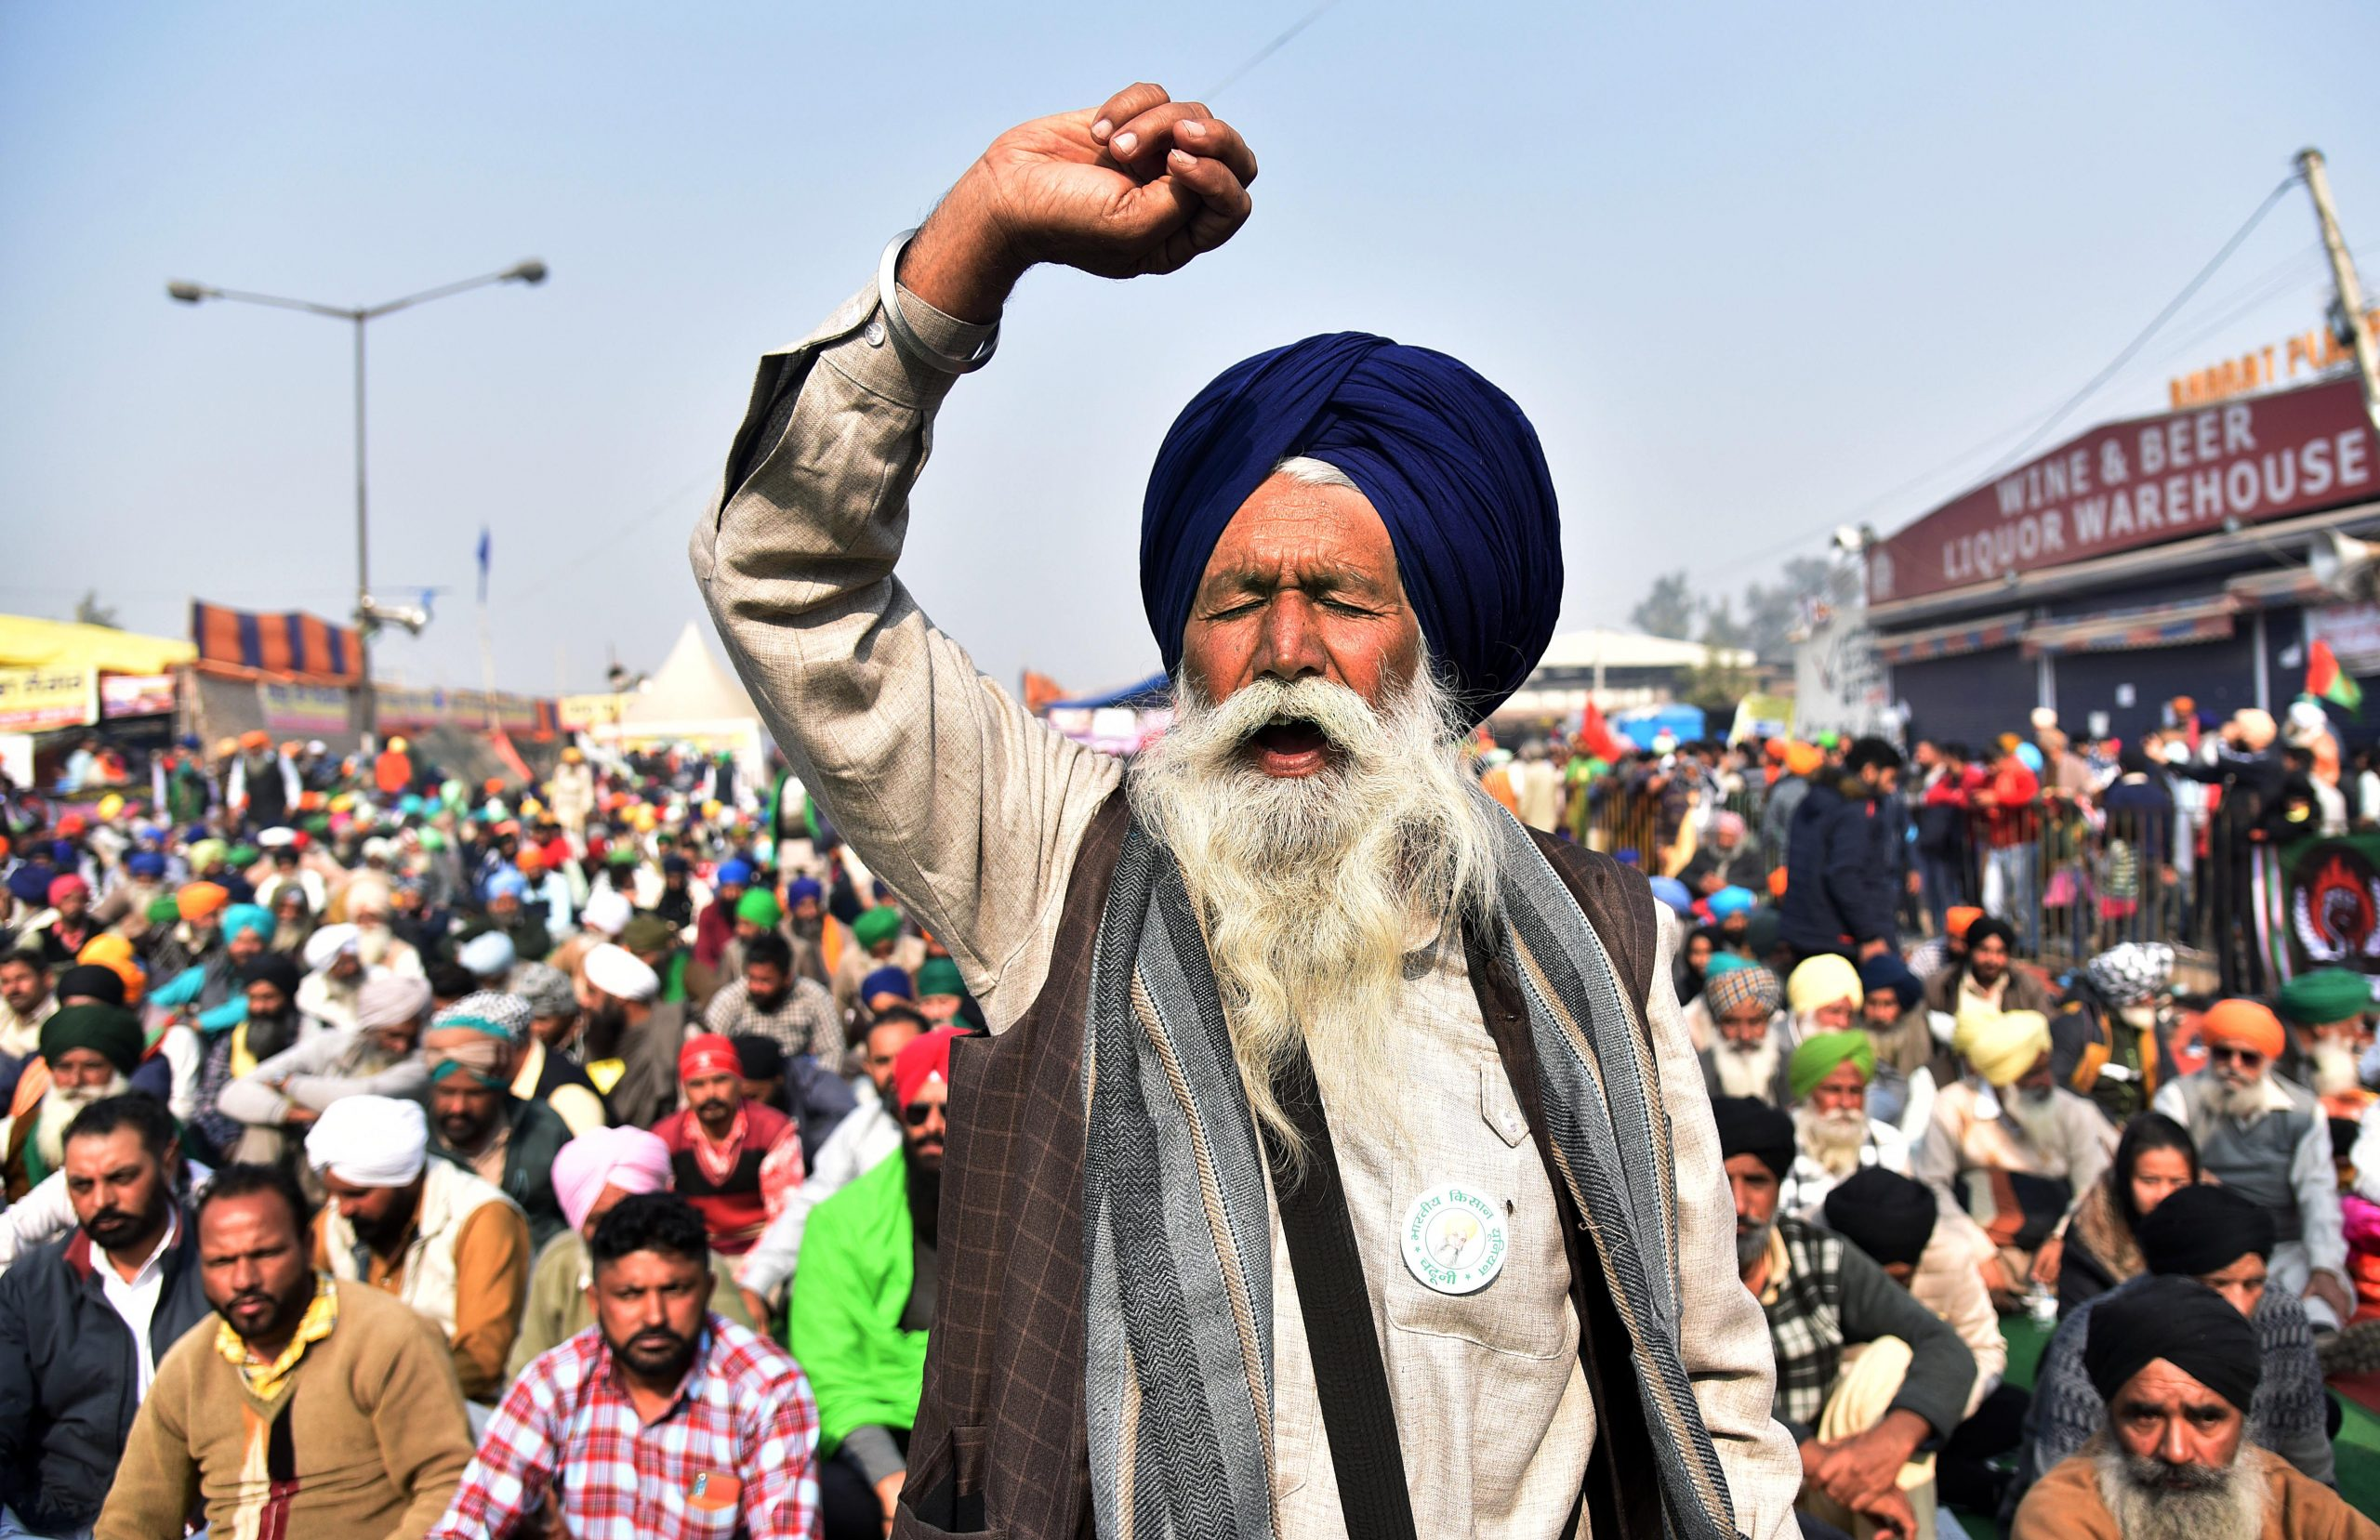 LIVE: Farmers' narrate continues amid freezing temperatures in Delhi-NCR